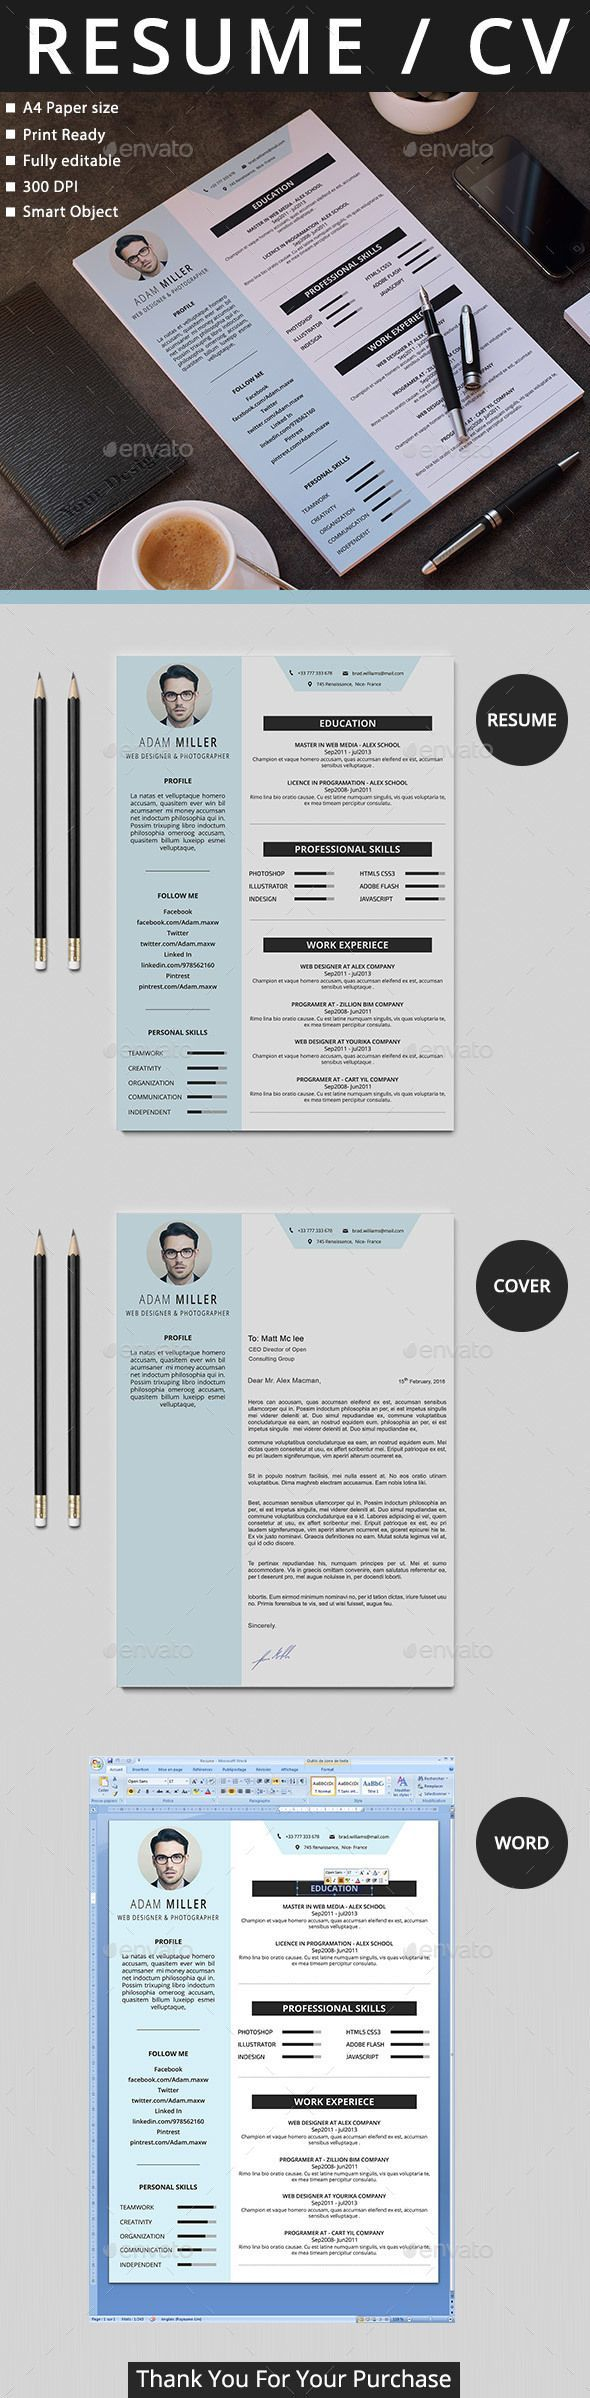 242 Best Shri Collections Images On Pinterest Resume Templates